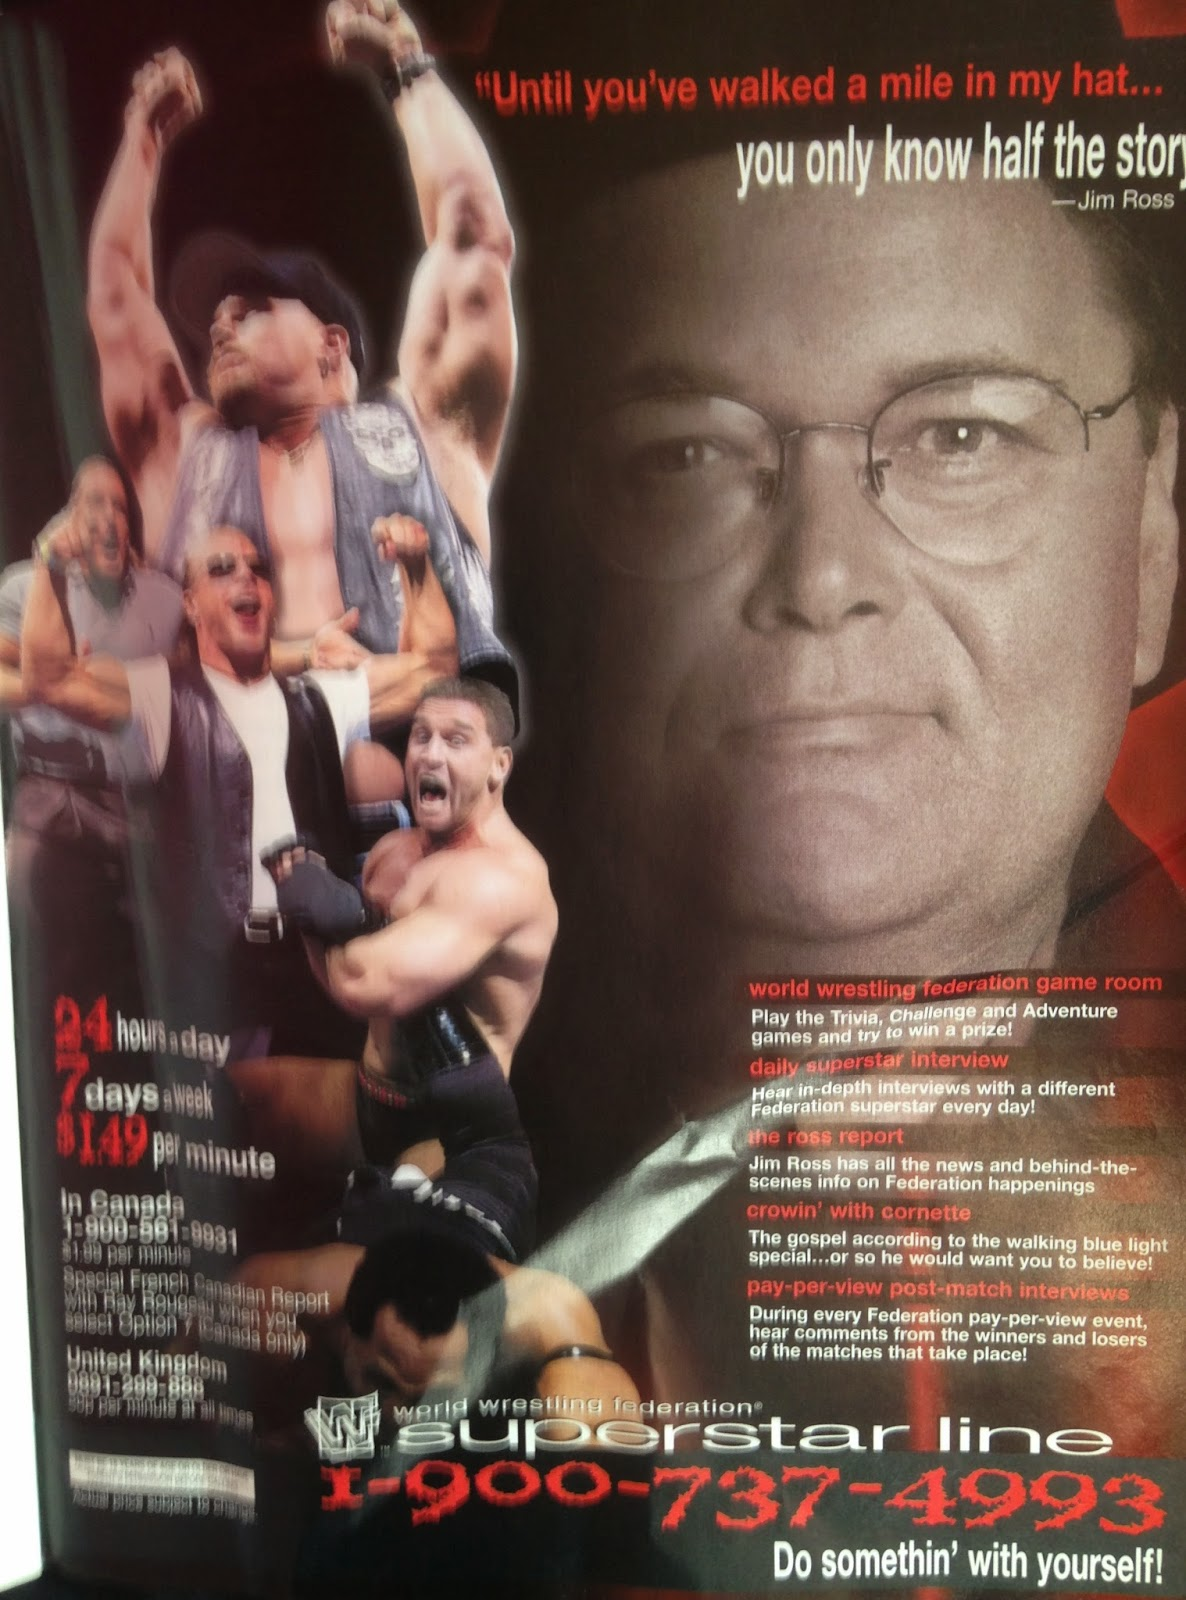 WWE - WWF Raw Magazine - April 1998 - WWF Superstar Line ad featuring Jim Ross